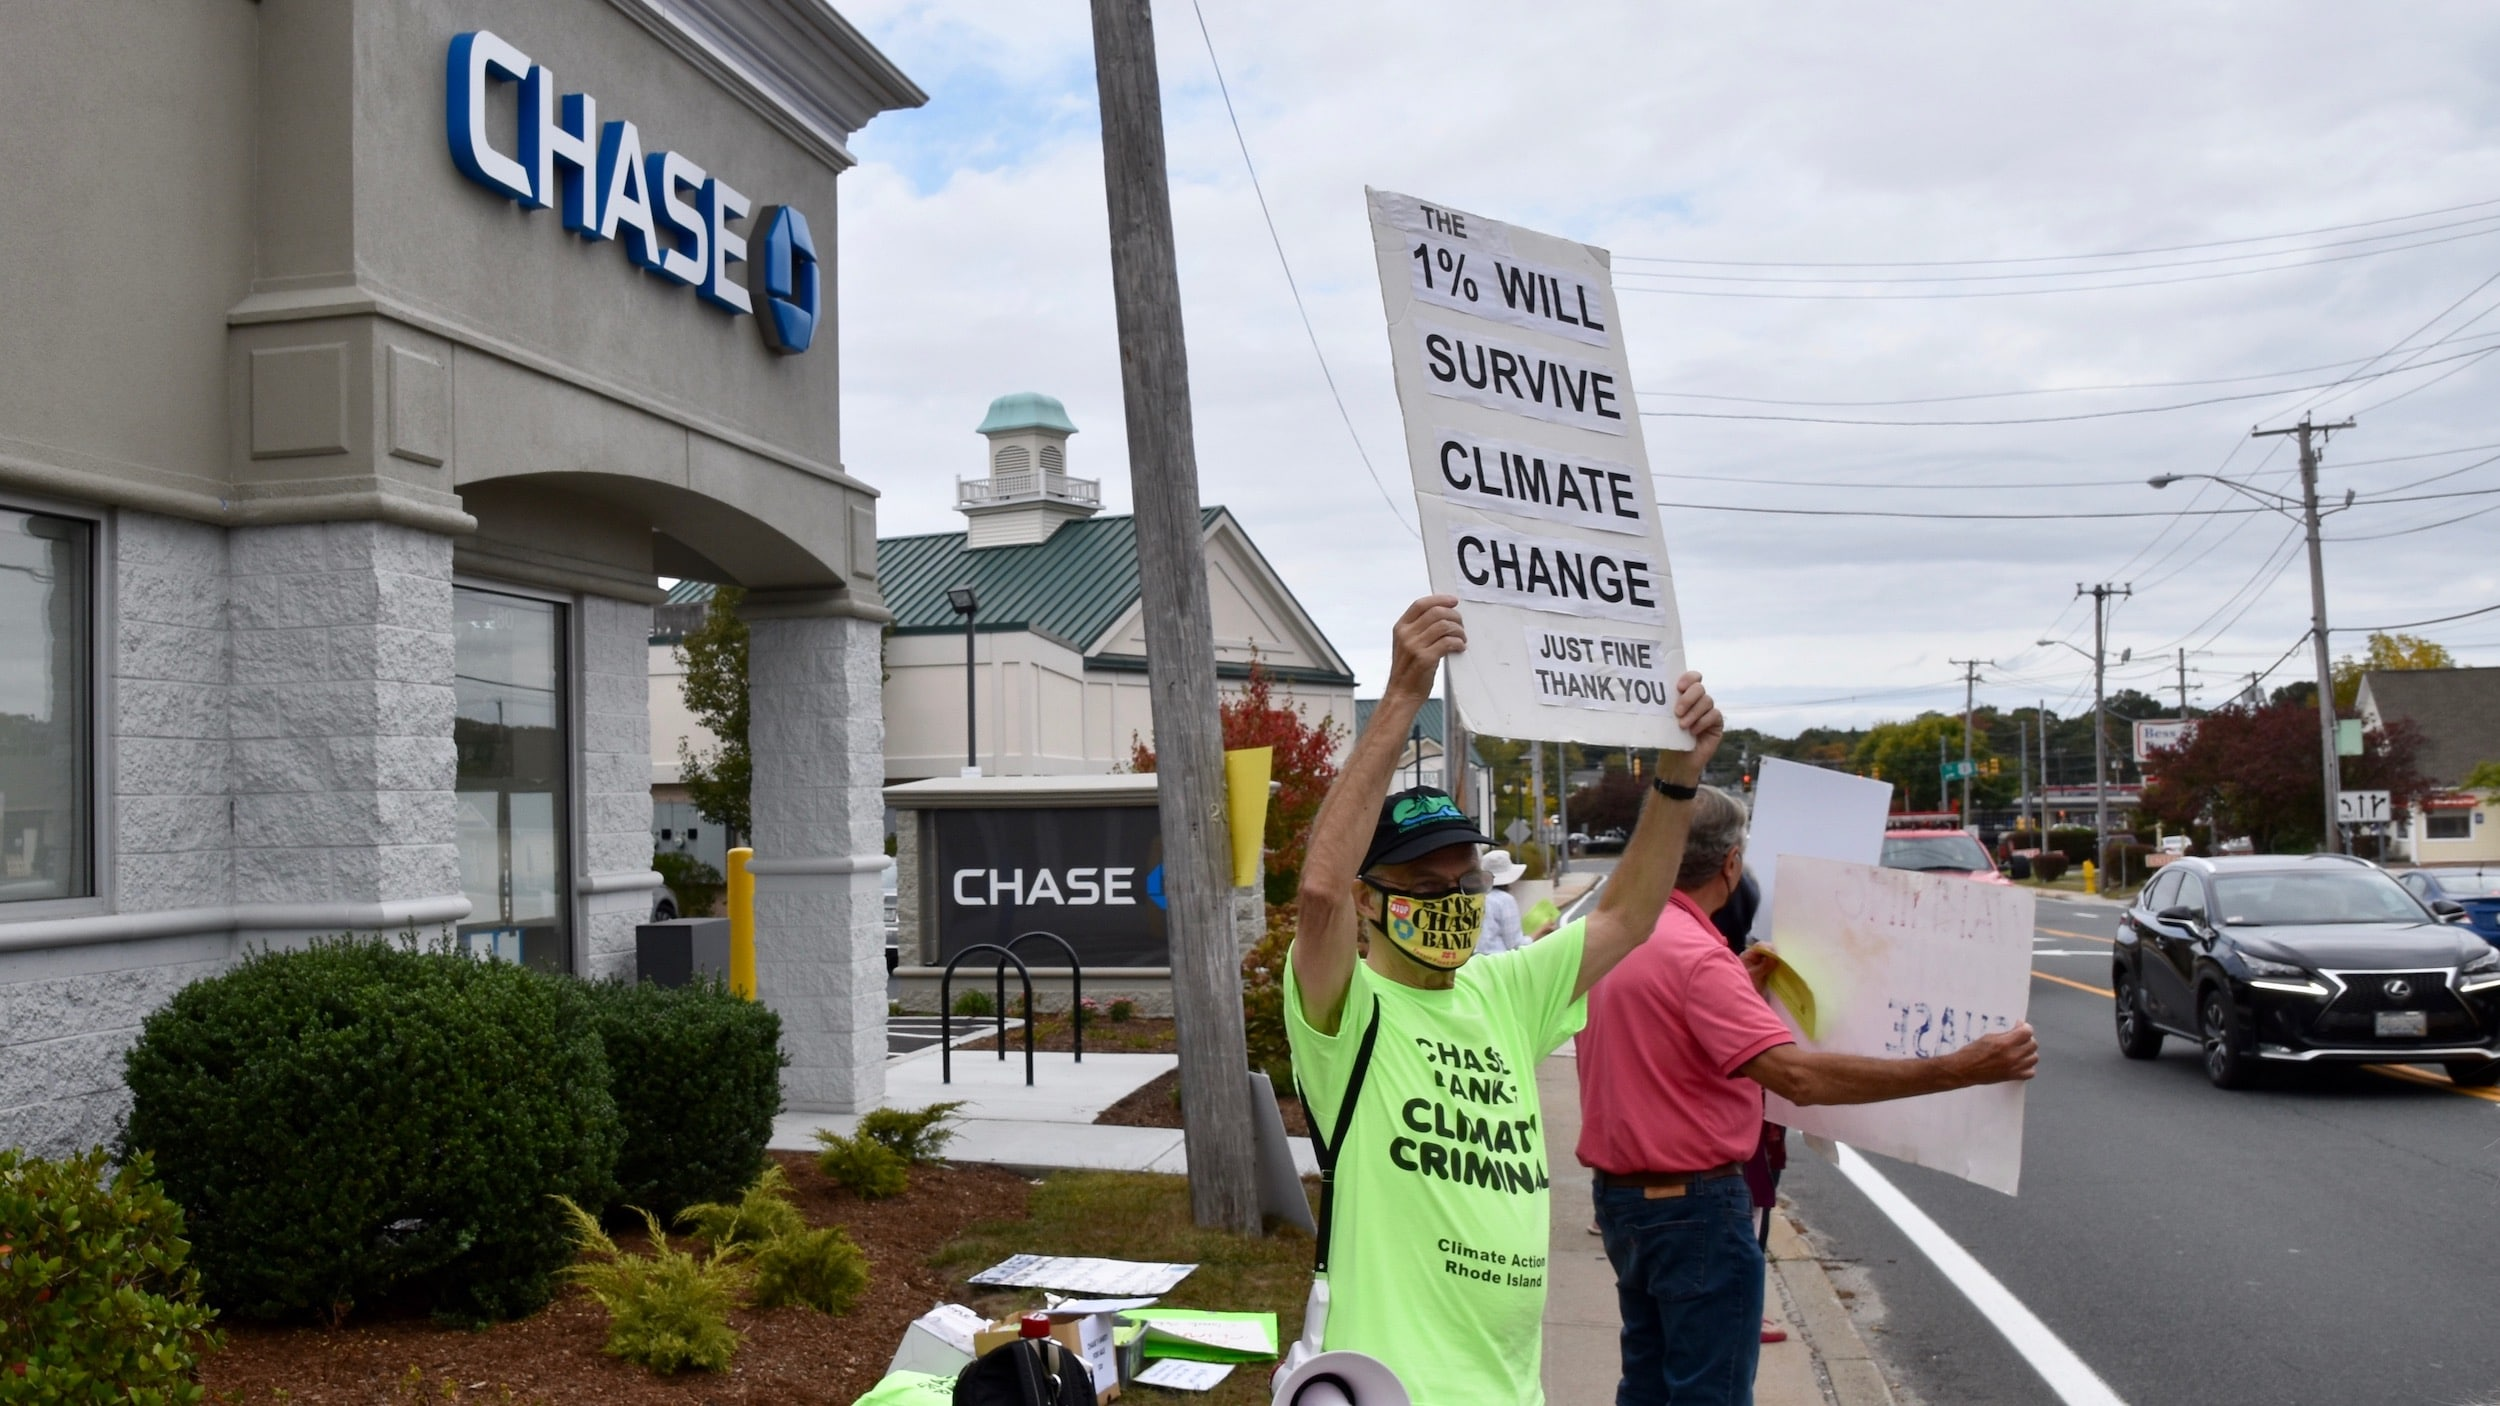 Photo for Saying no to 'climate criminal' Chase Bank in Wakefield